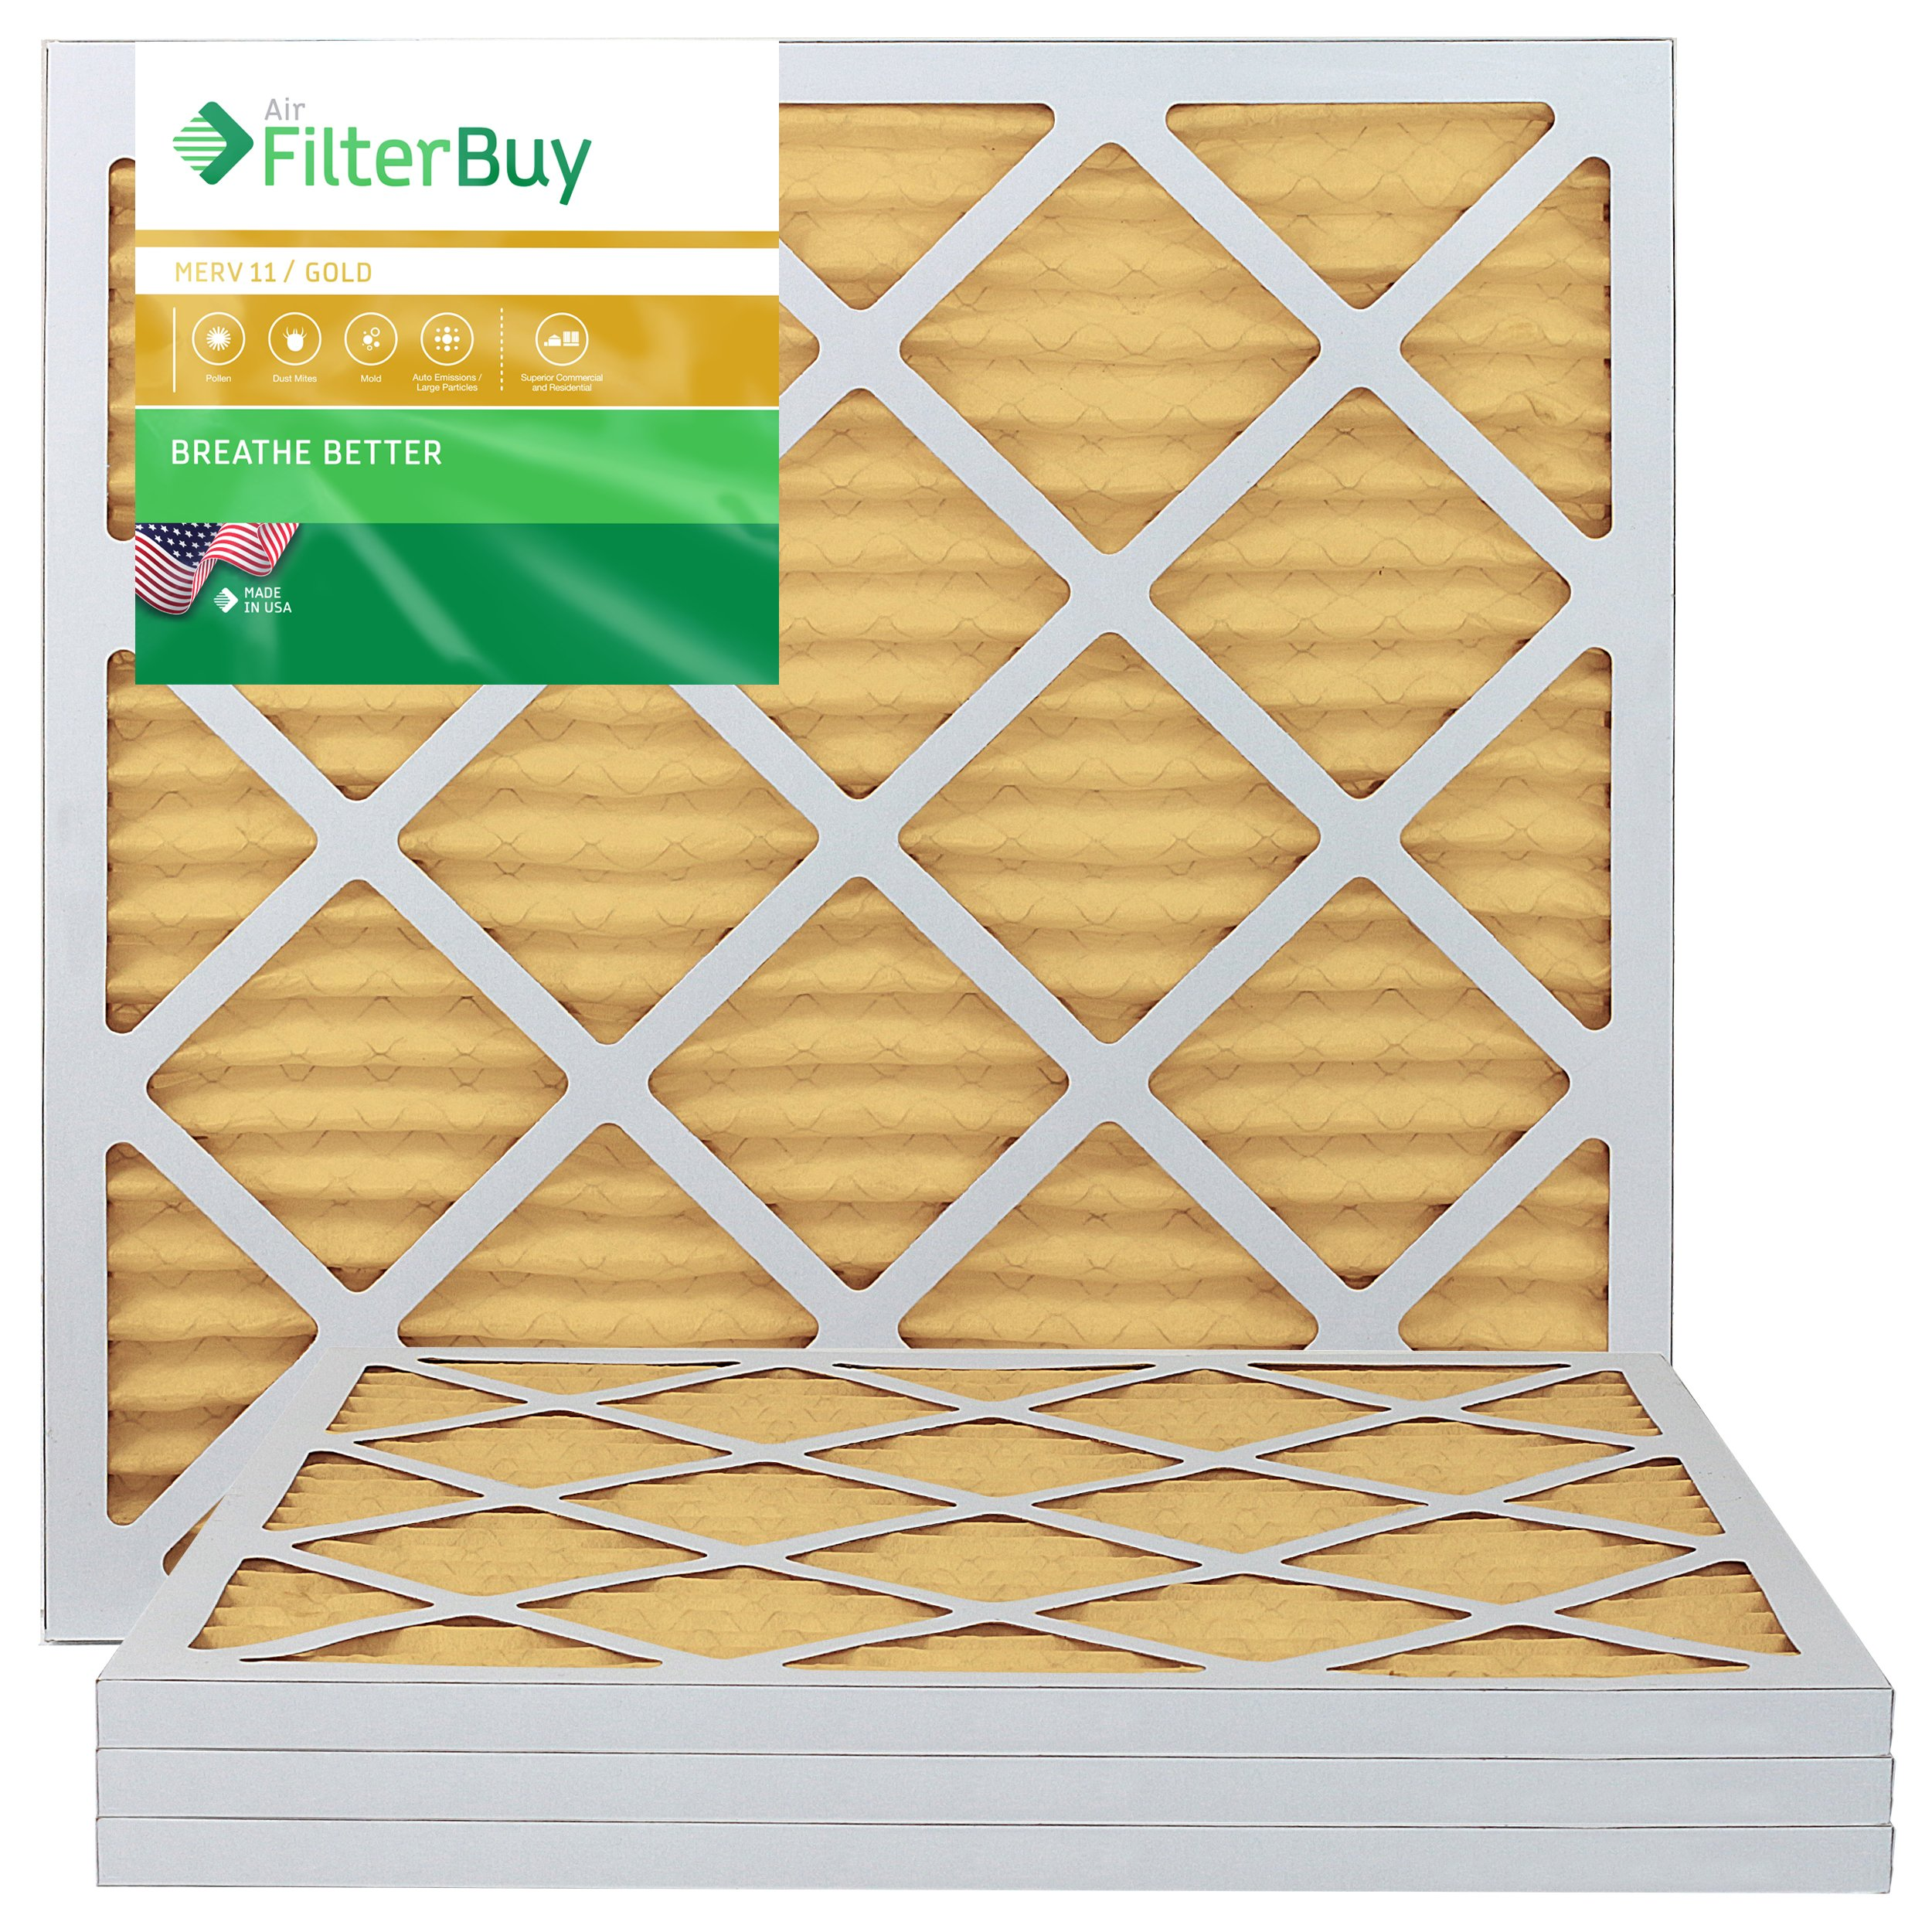 AFB Gold MERV 11 20x20x1 Pleated AC Furnace Air Filter. Pack of 4 Filters. 100% produced in the USA.